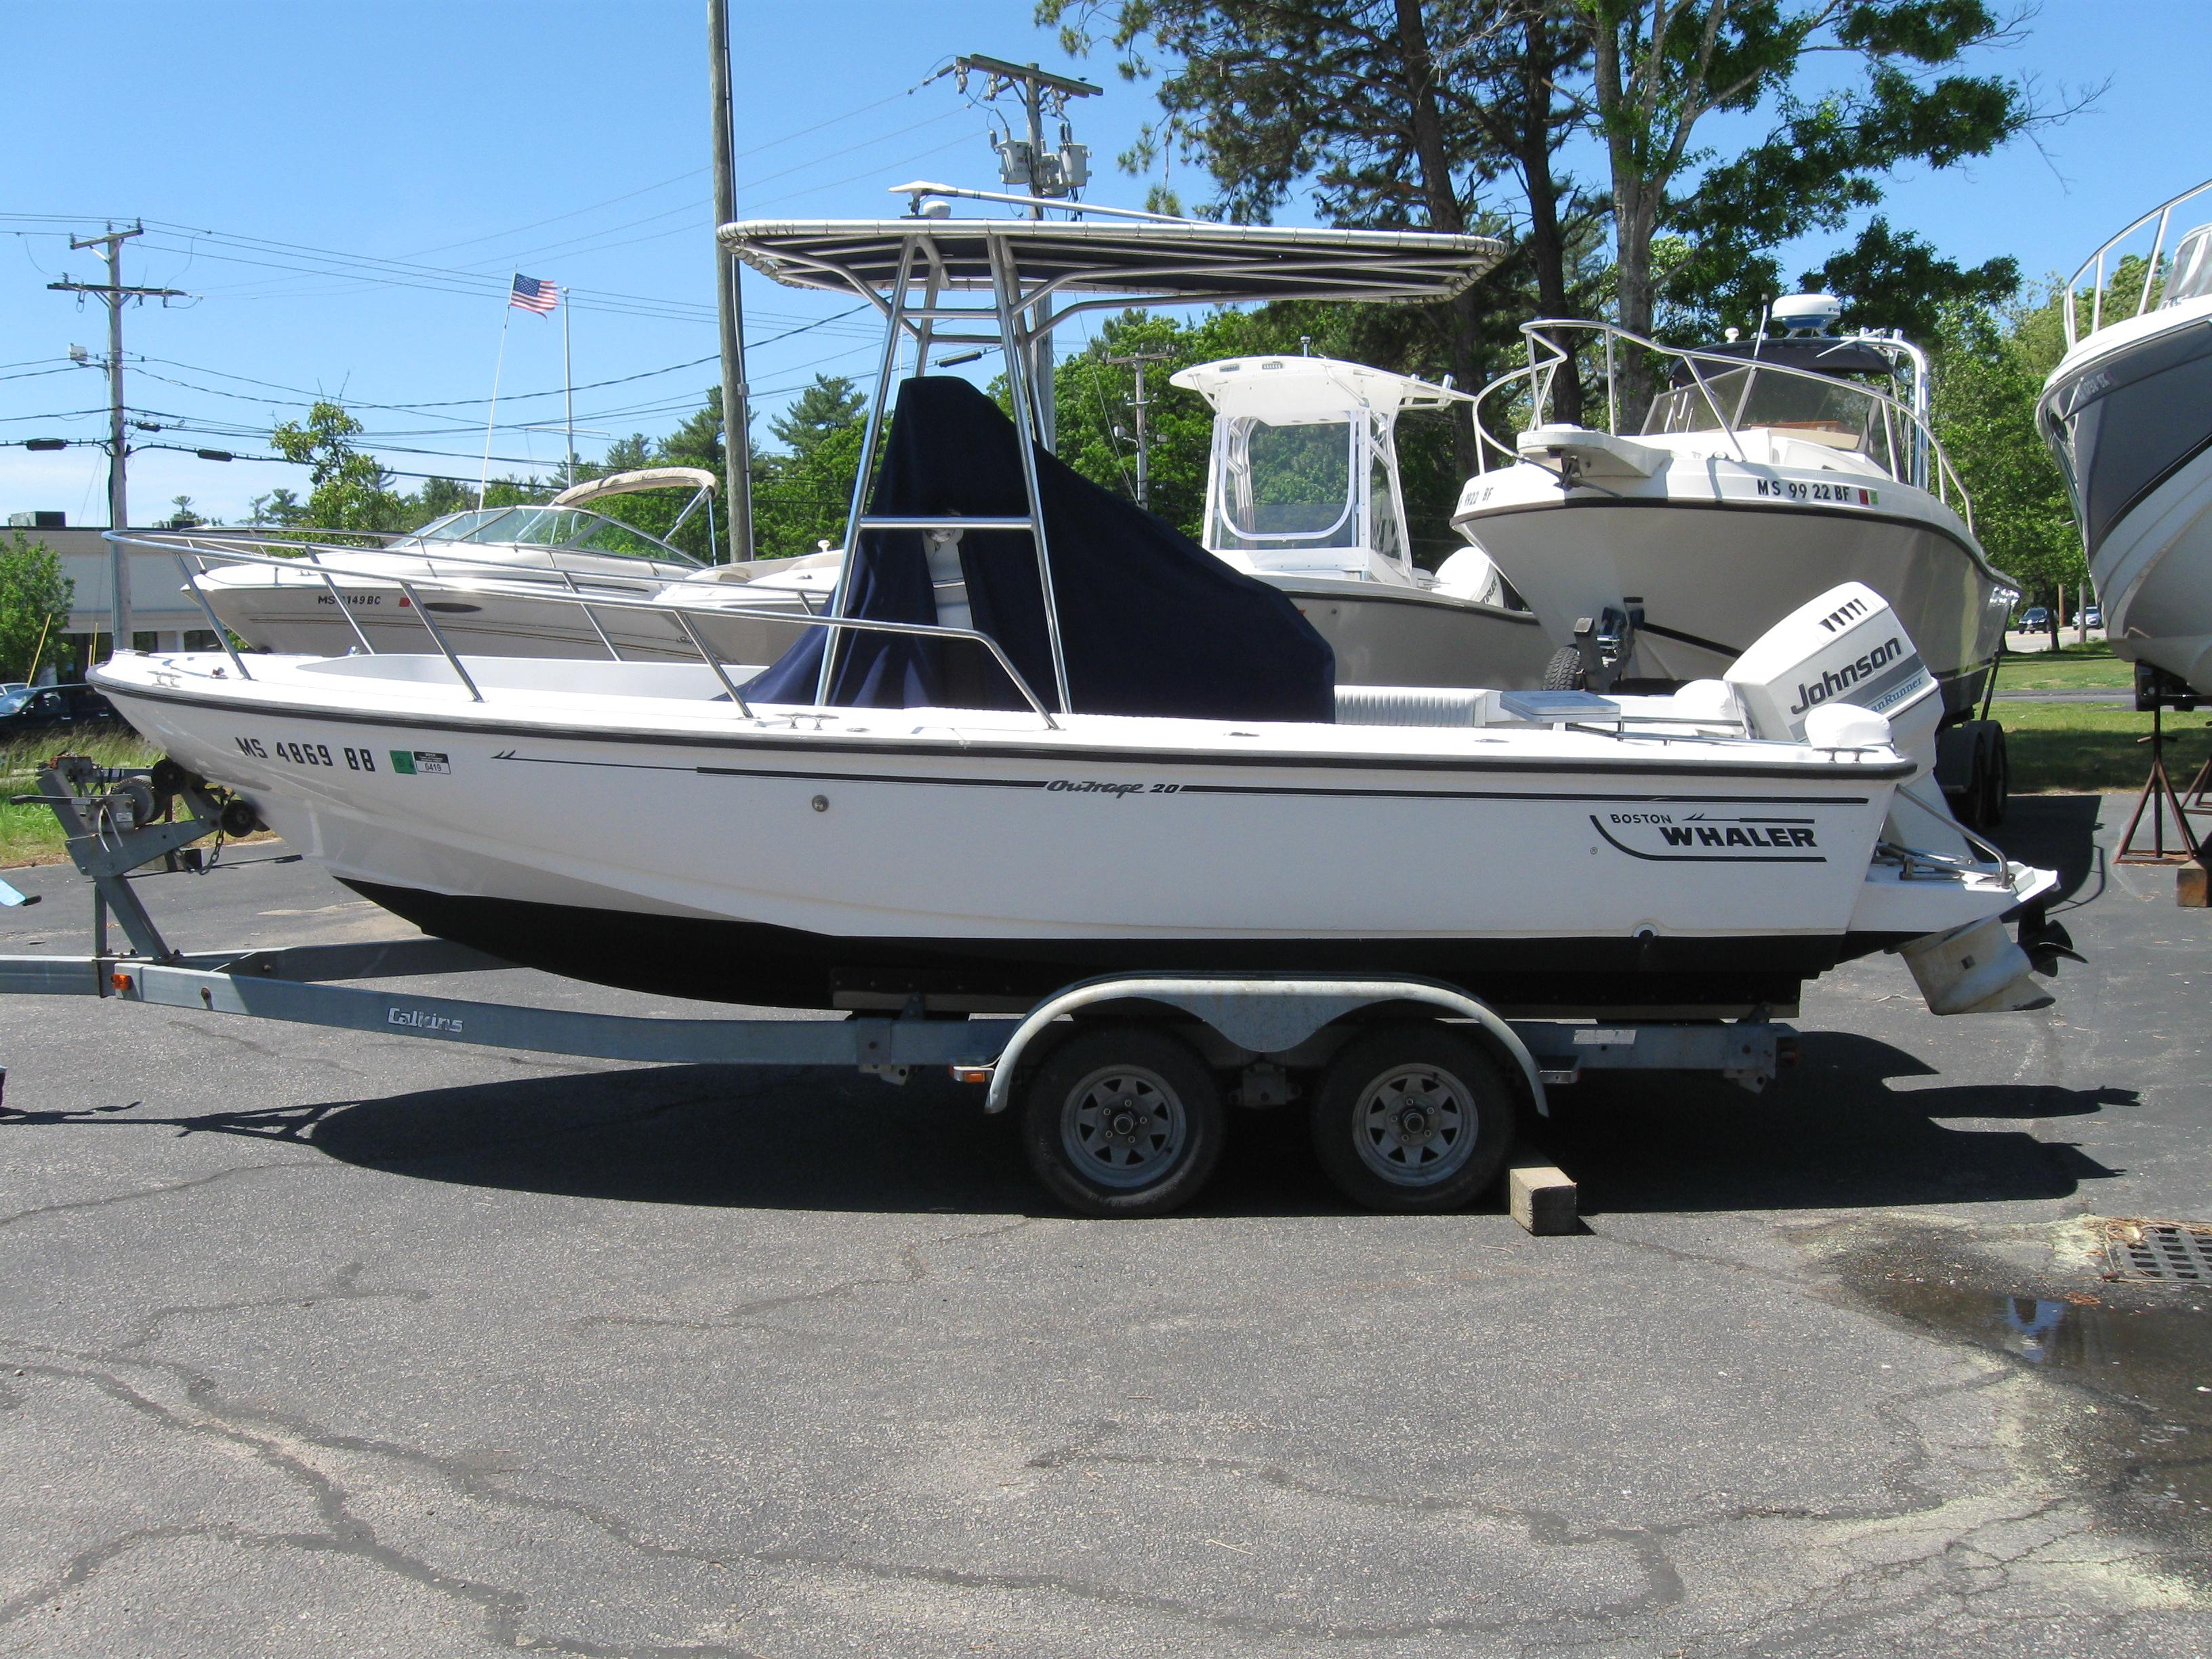 Boston Whaler Outrage 20 Power Boats For Sale - South Shore